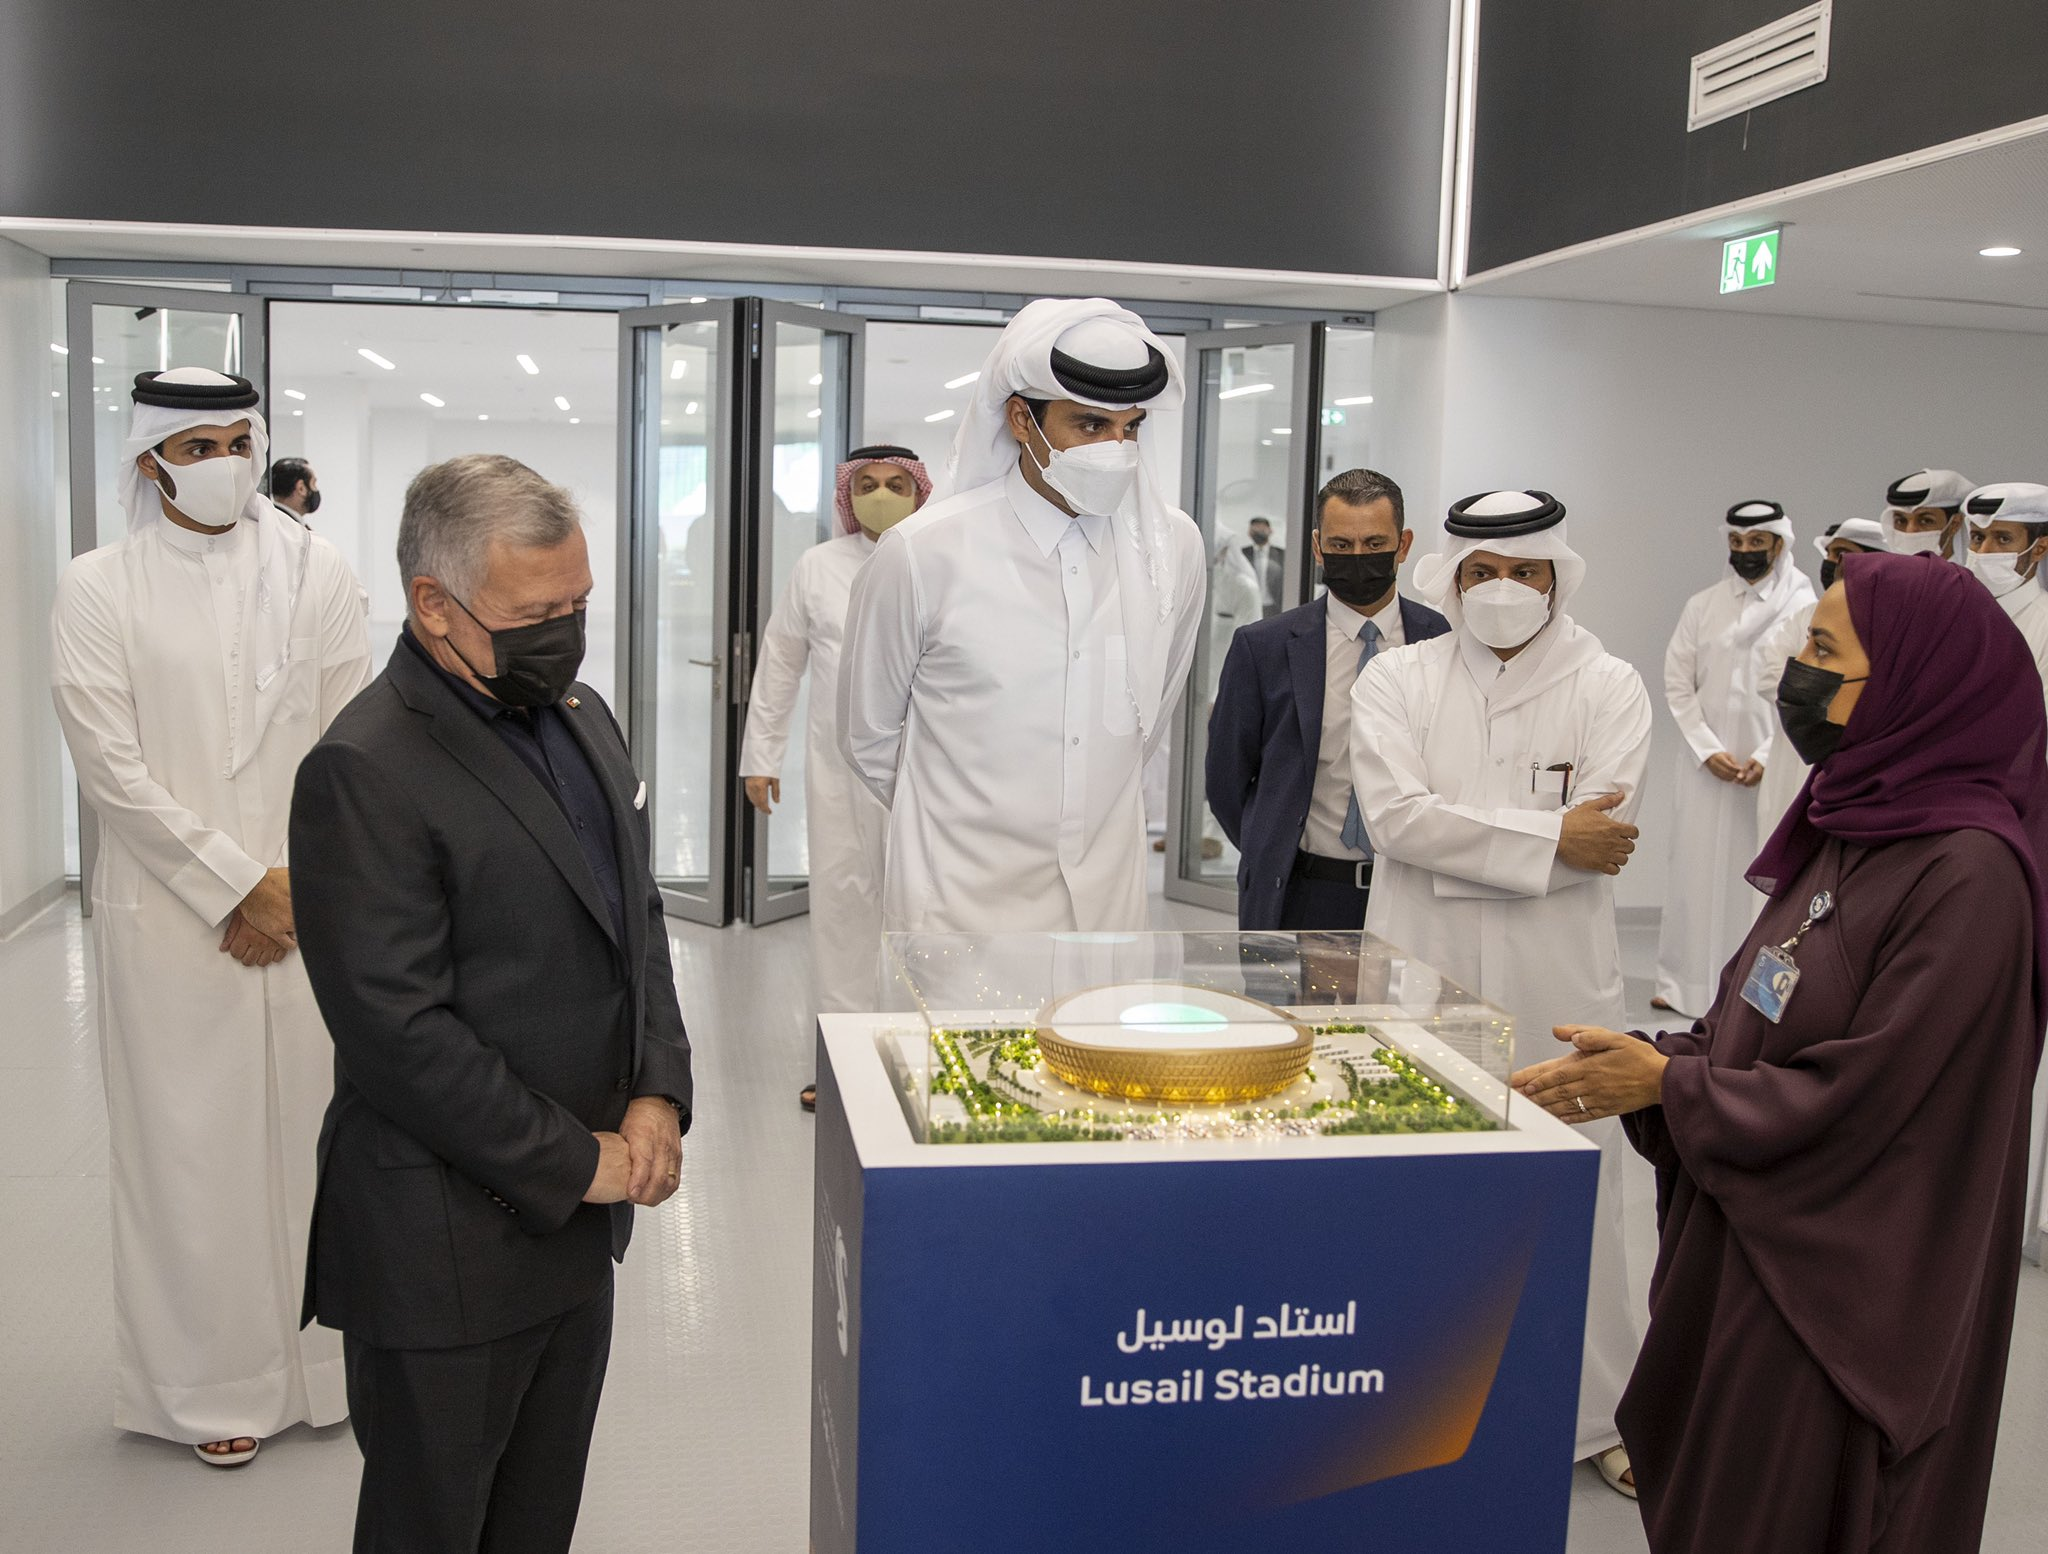 HH the Amir and HM the King of Jordan Visit the Education City Stadium